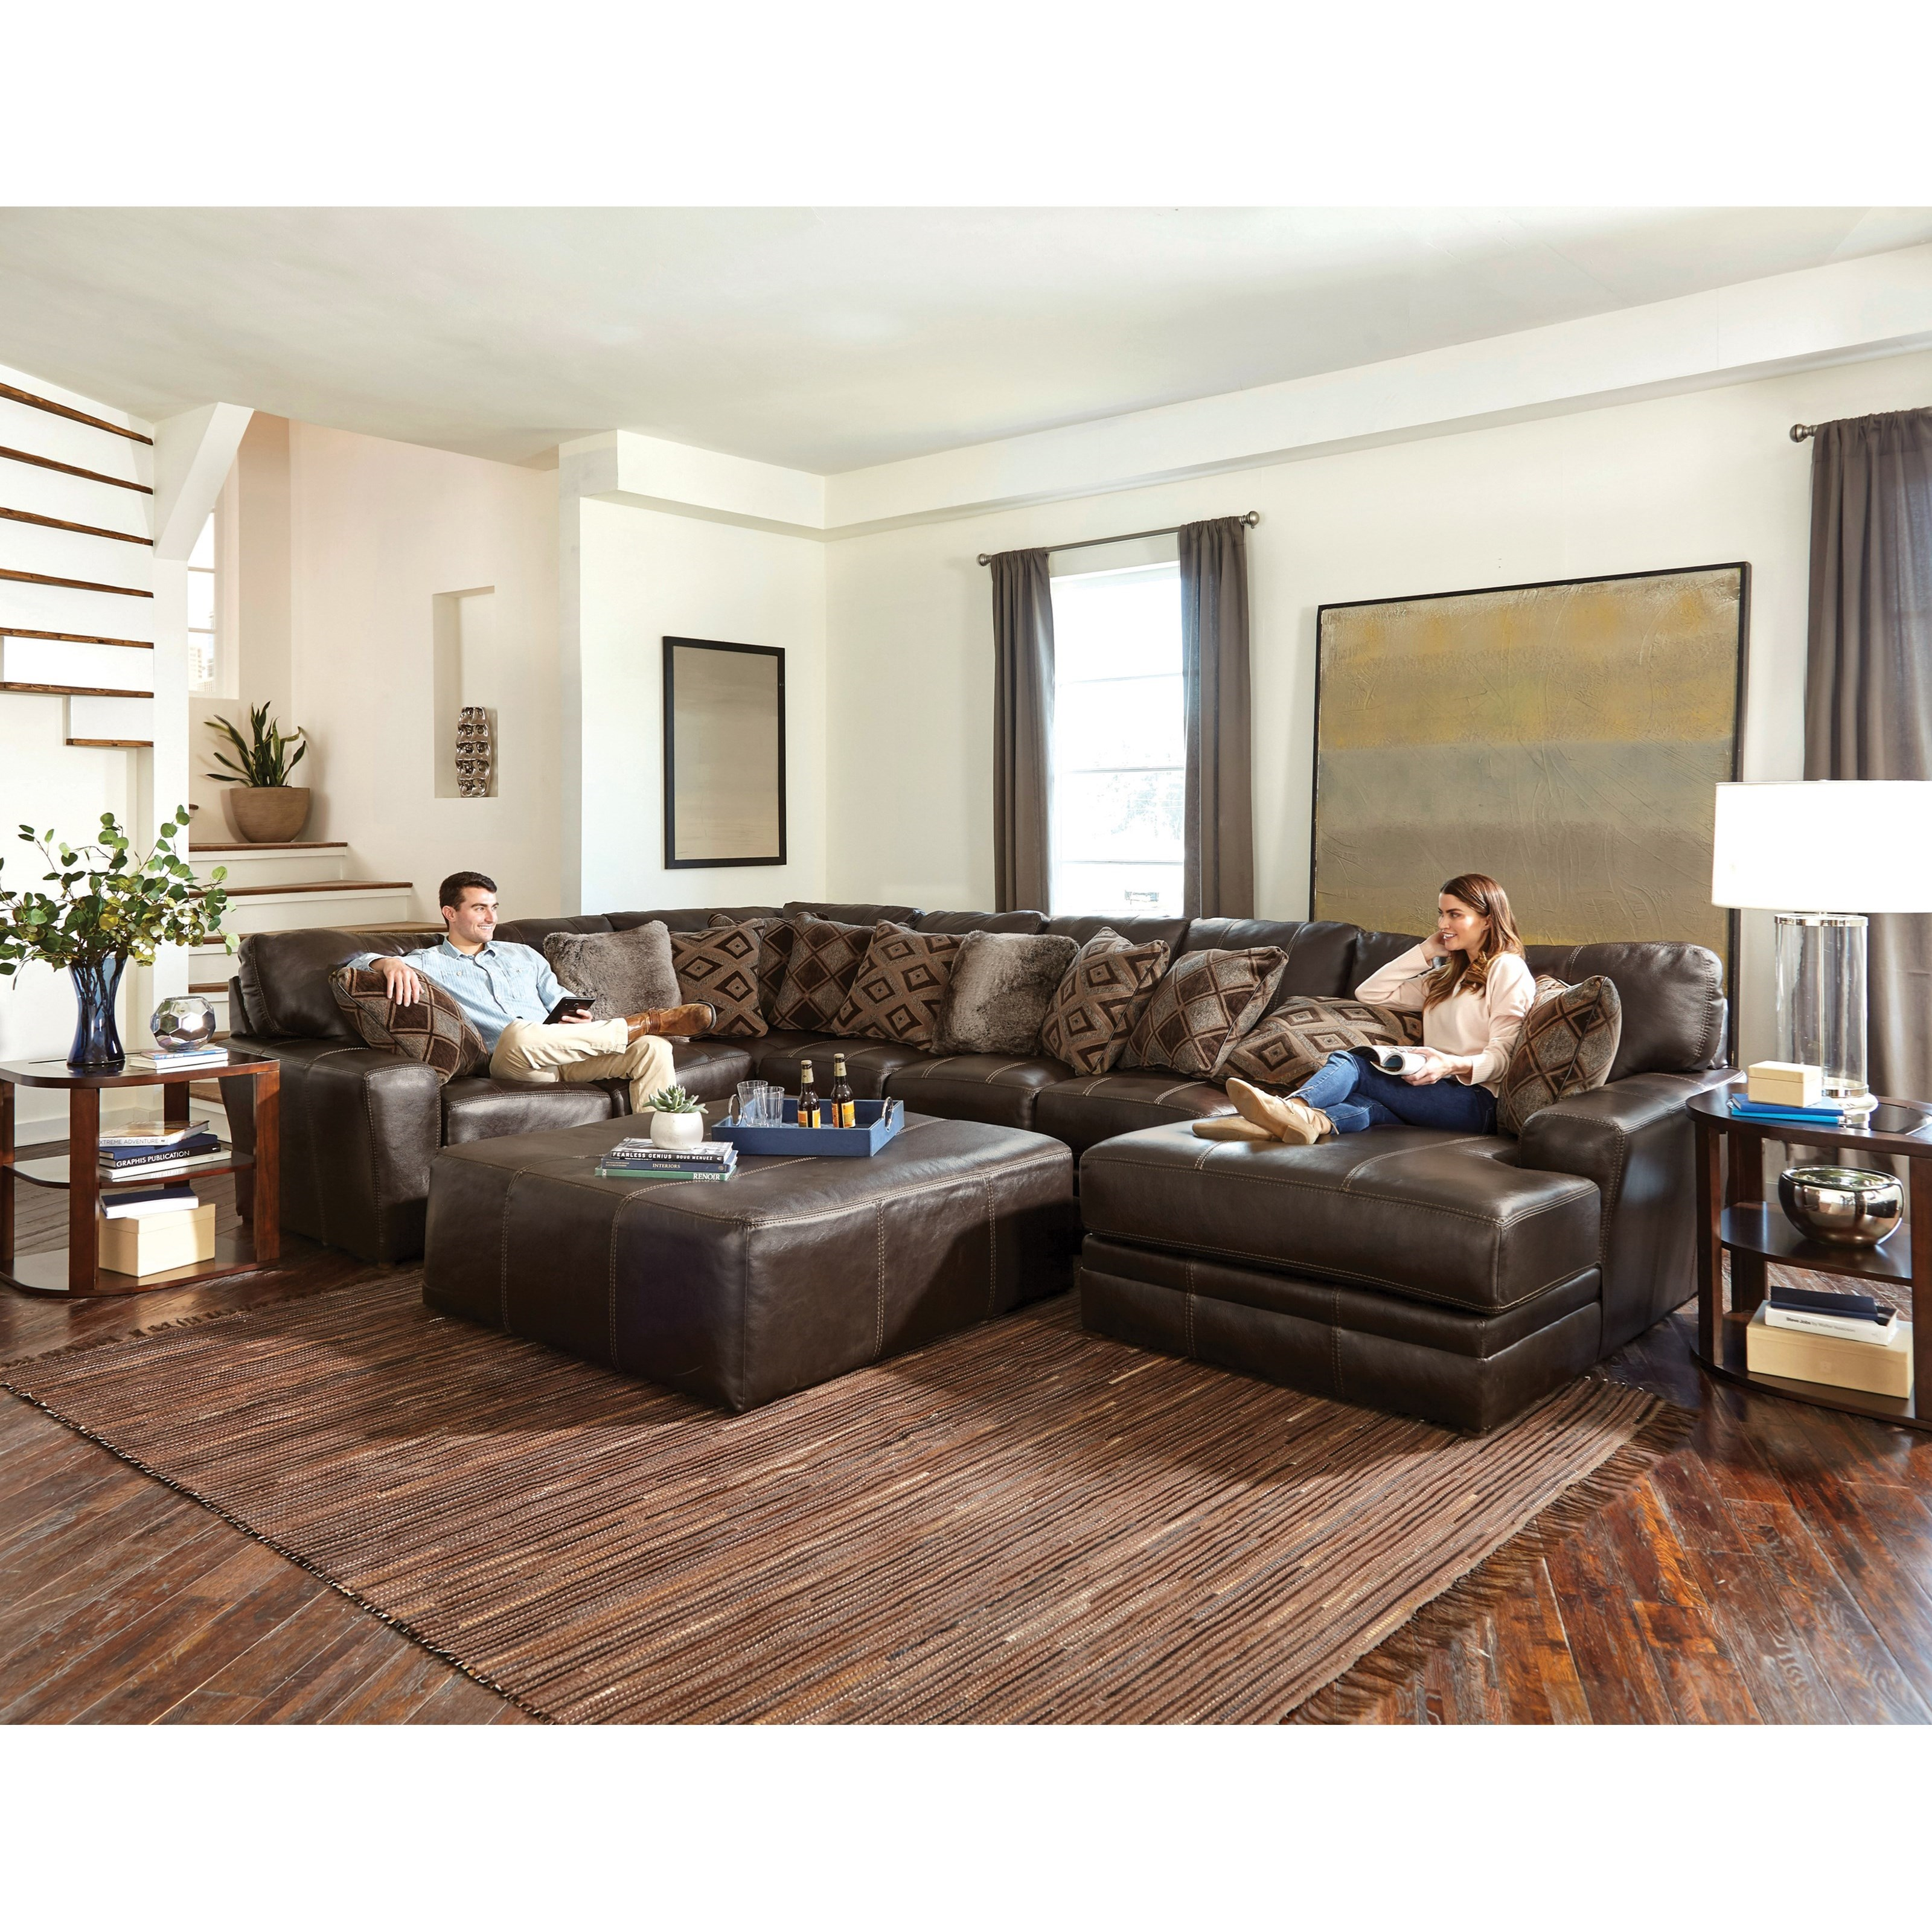 Denali 3 Piece Sectional by Jackson Furniture at Northeast Factory Direct